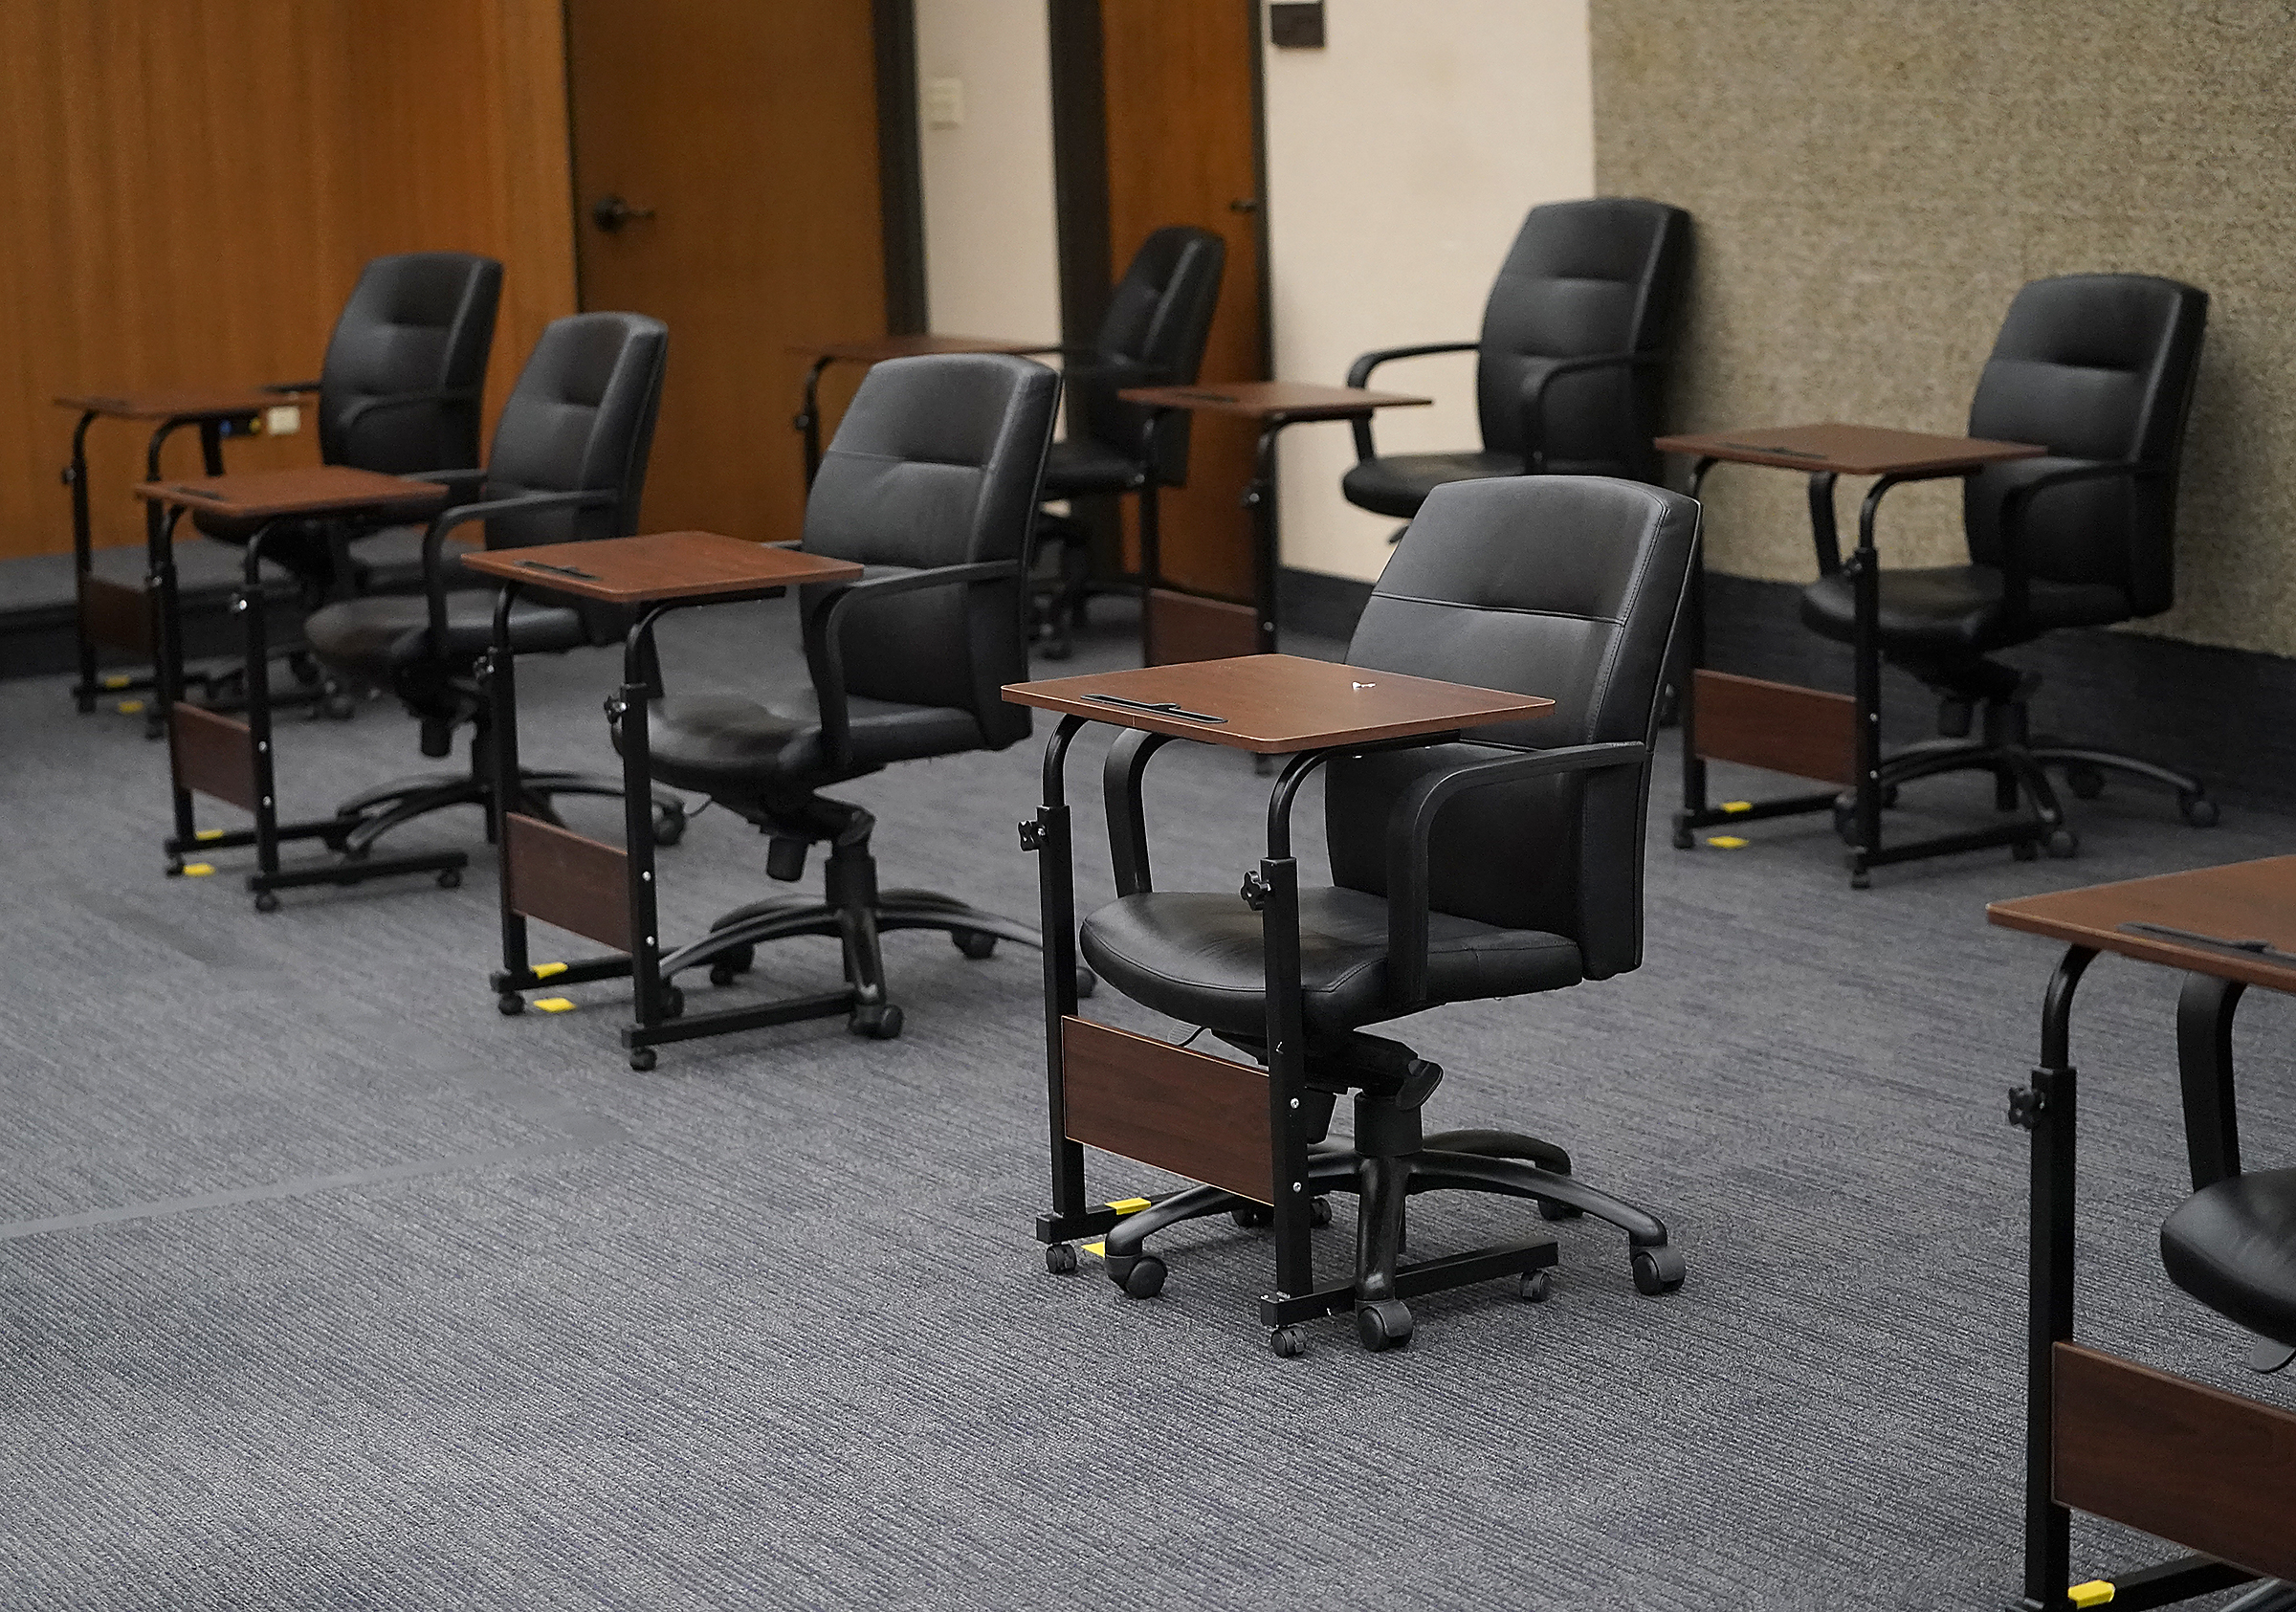 The courtroom, including these juror seats, where the Derek Chauvin trial will take place at the Hennepin County Government Center in Minneapolis.